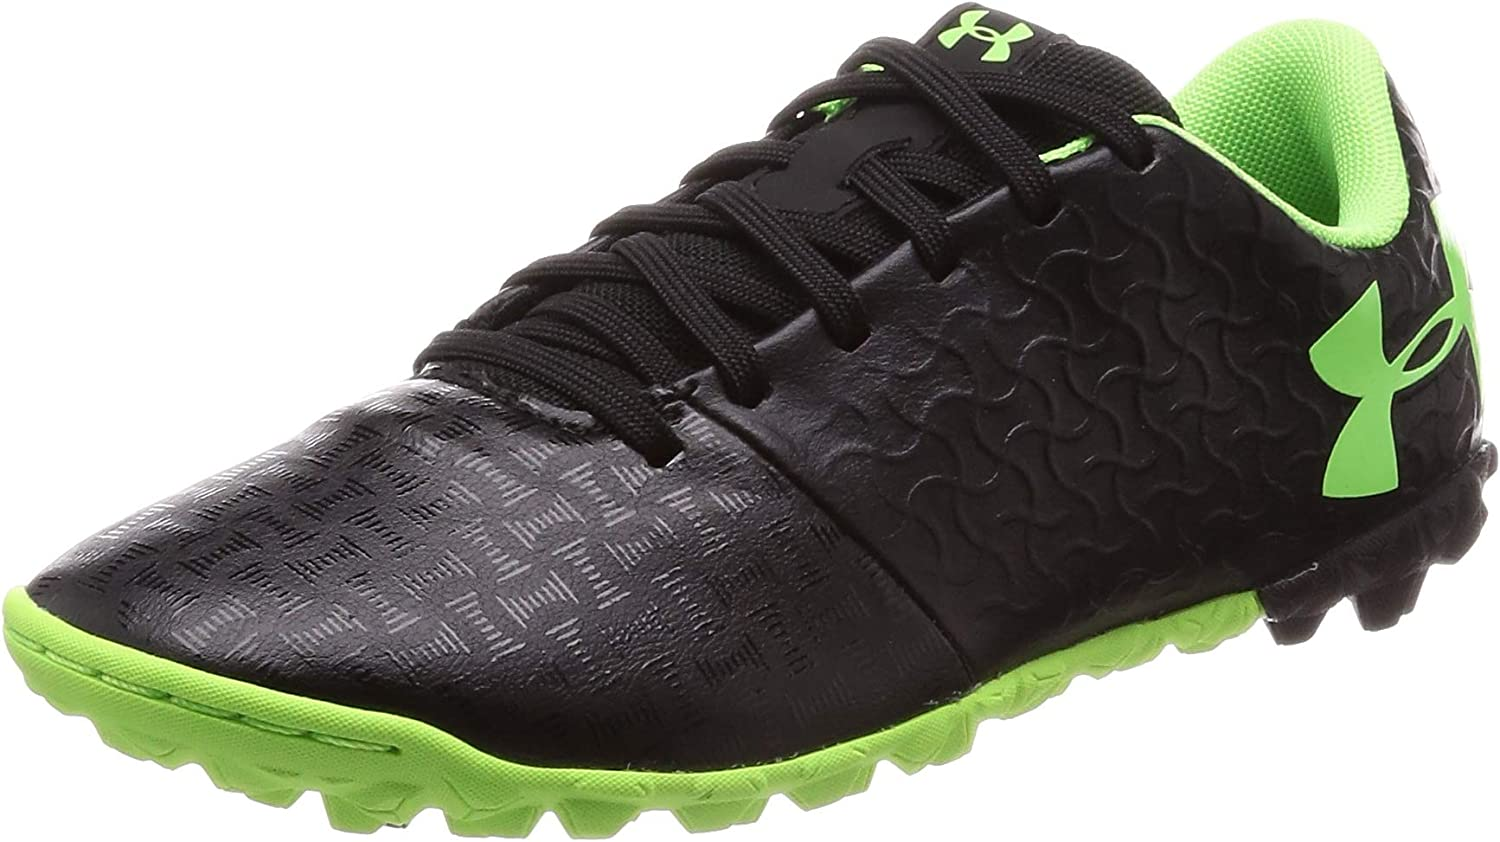 OFFicial store Under Armour Unisex-Adult Magnetico Sneaker JR Select Turf Challenge the lowest price of Japan ☆